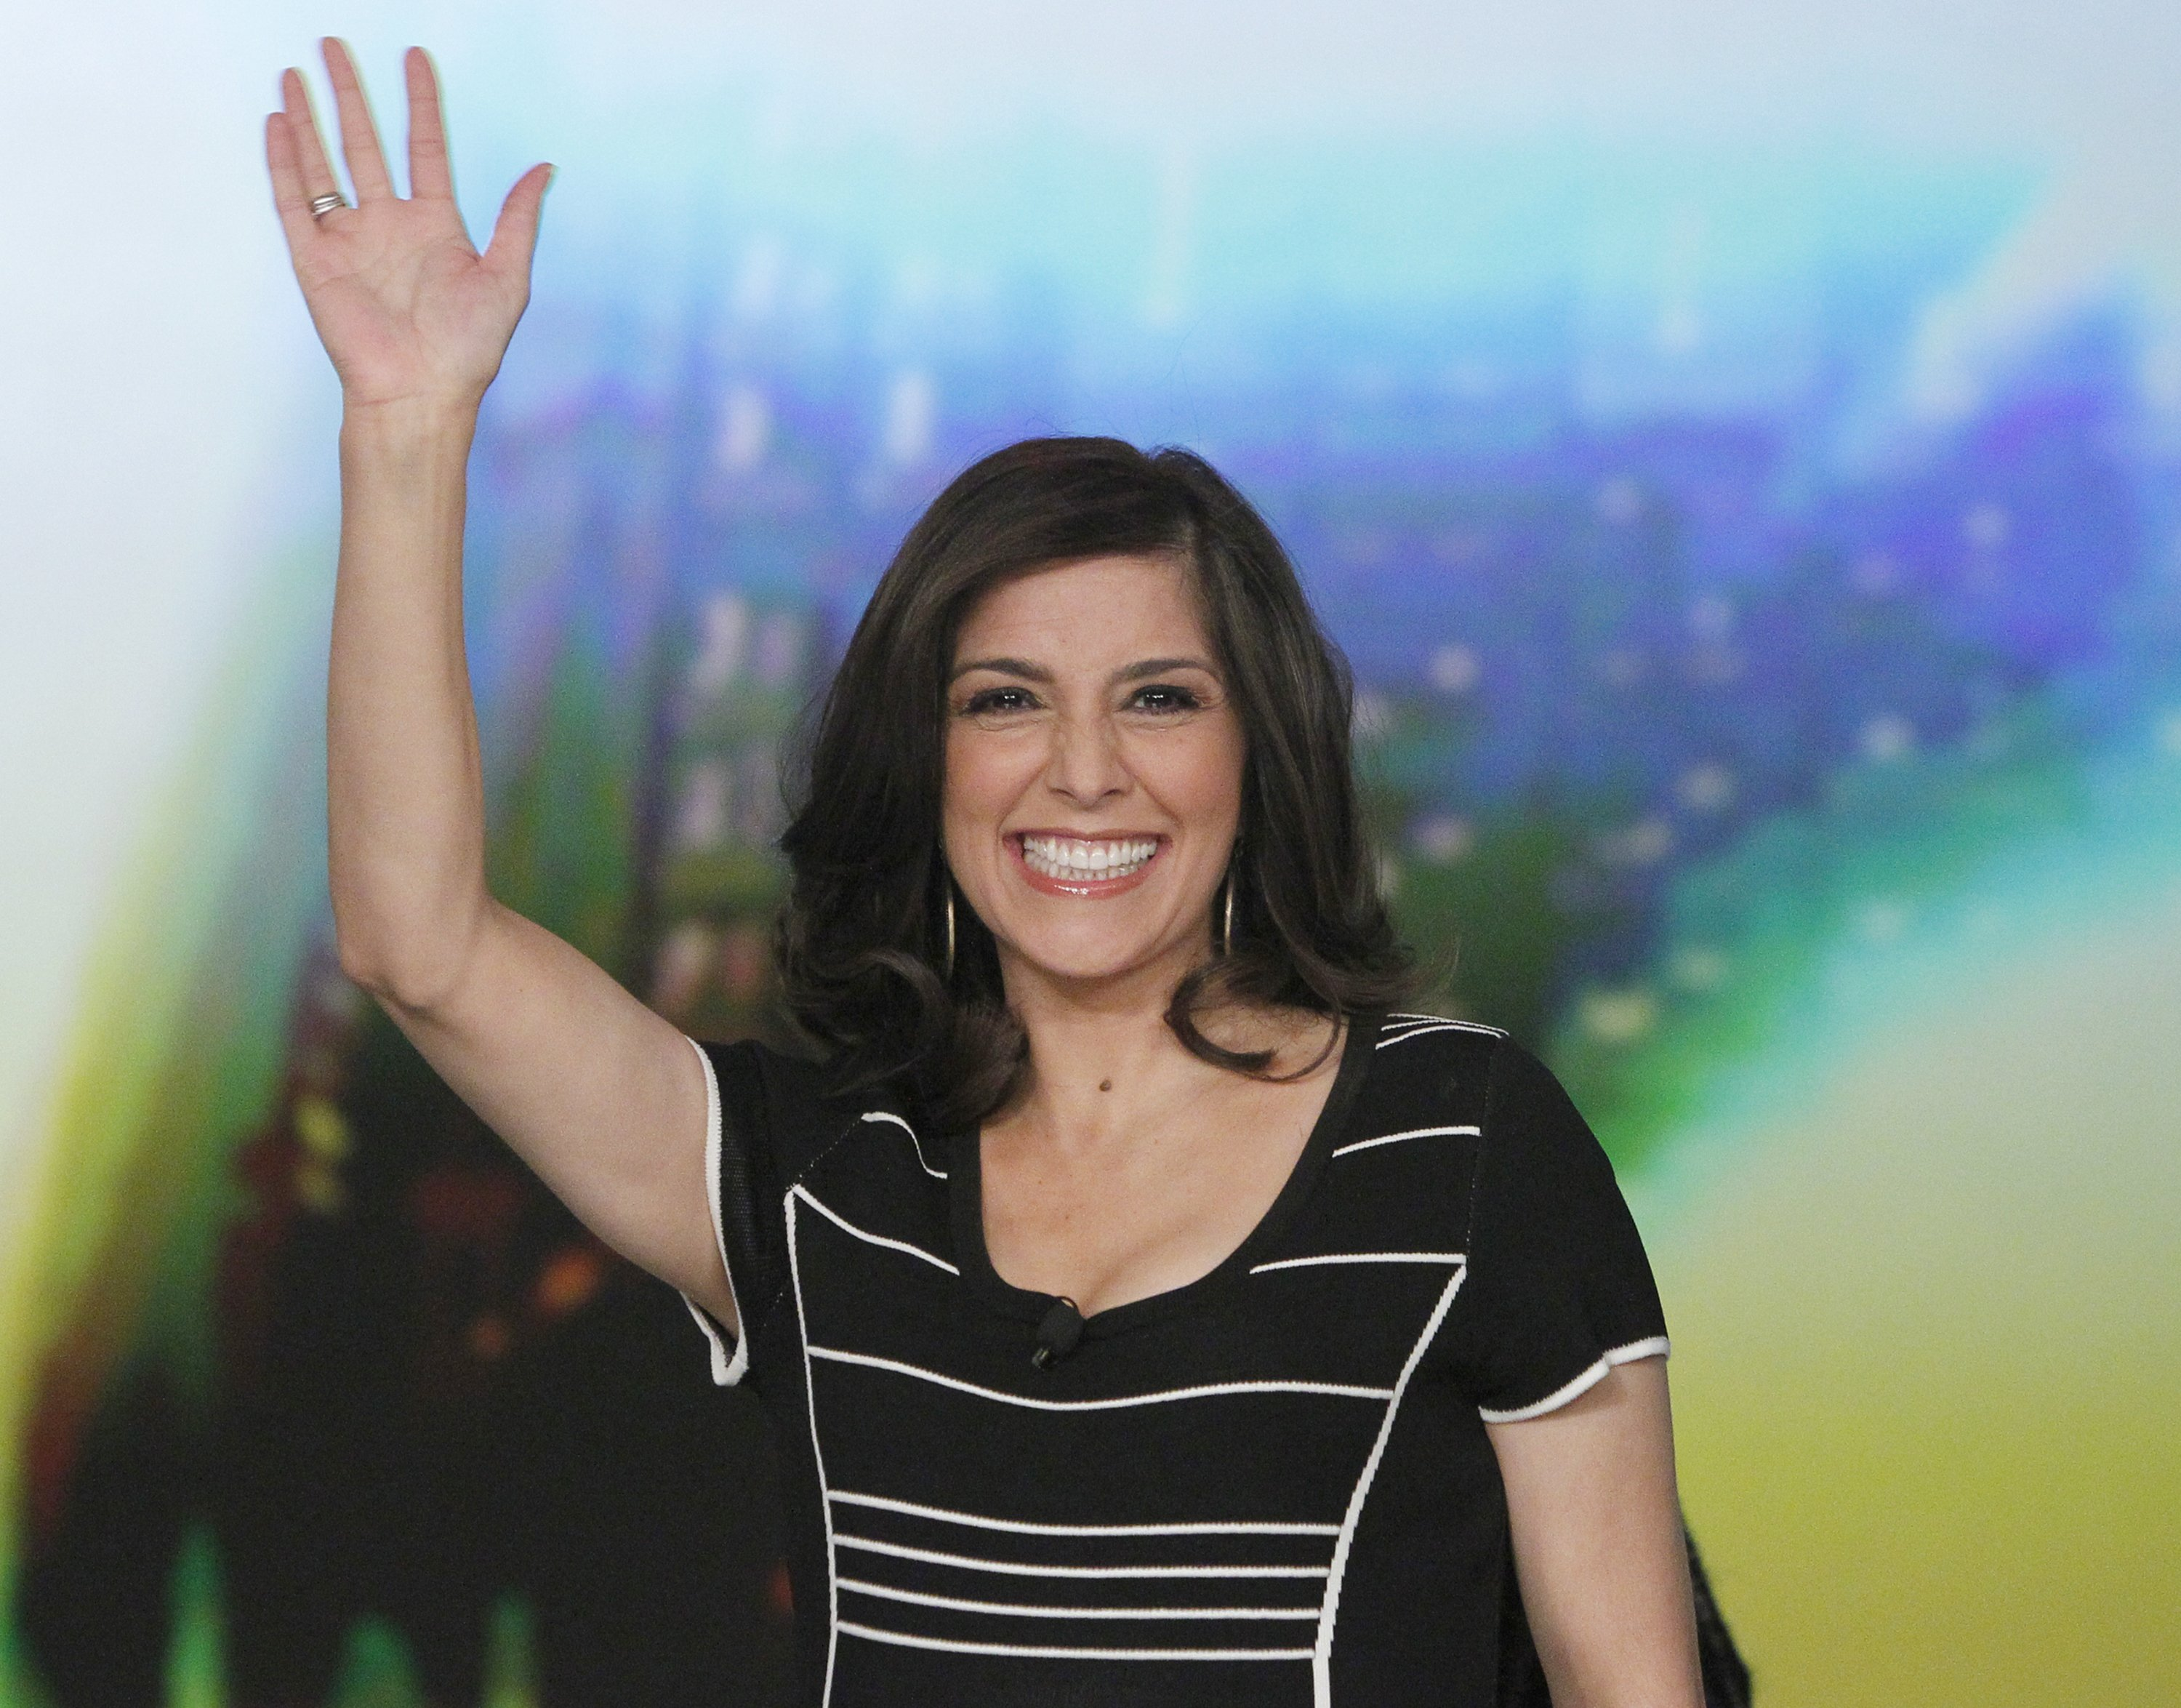 Rachel Campos-Duffy, guest speaker at the Independent Women's Forum|Photo: Getty Images